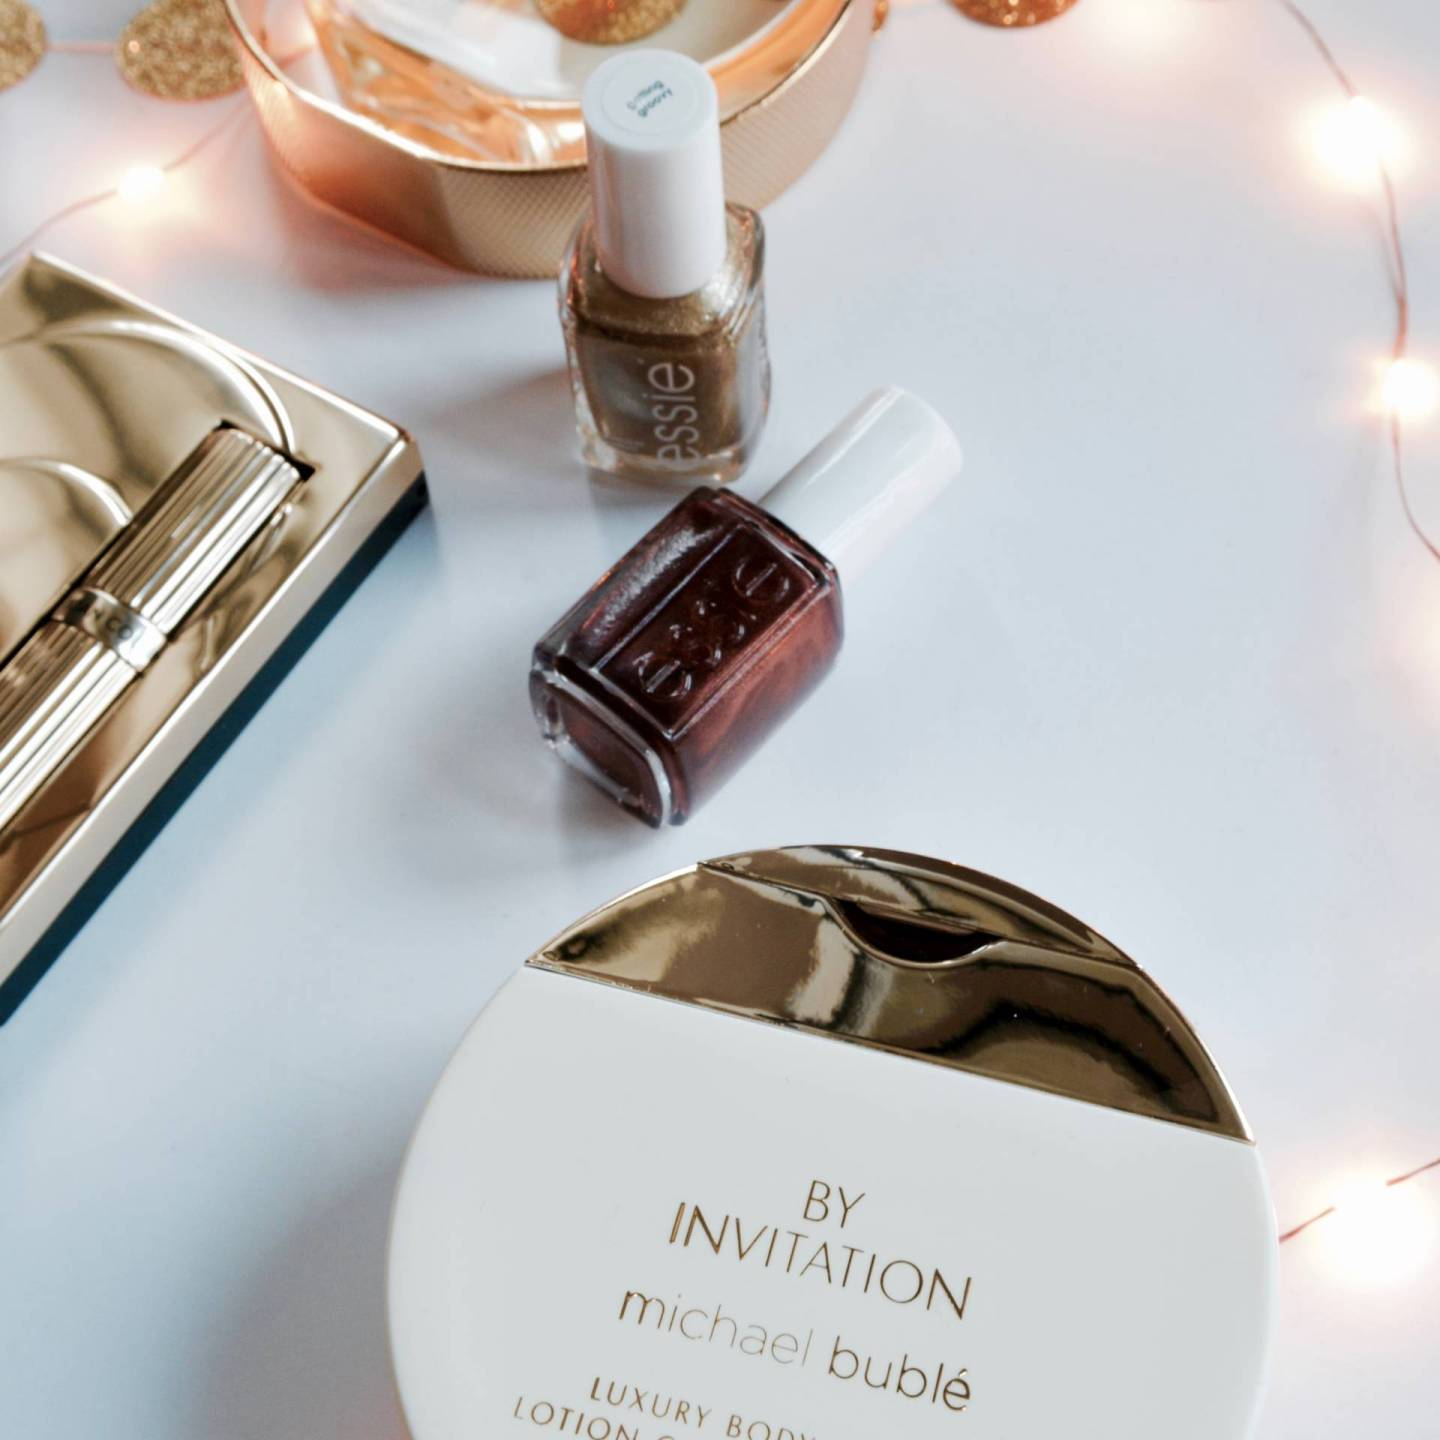 Last Minute Gift Guide: By Invitation fragrance